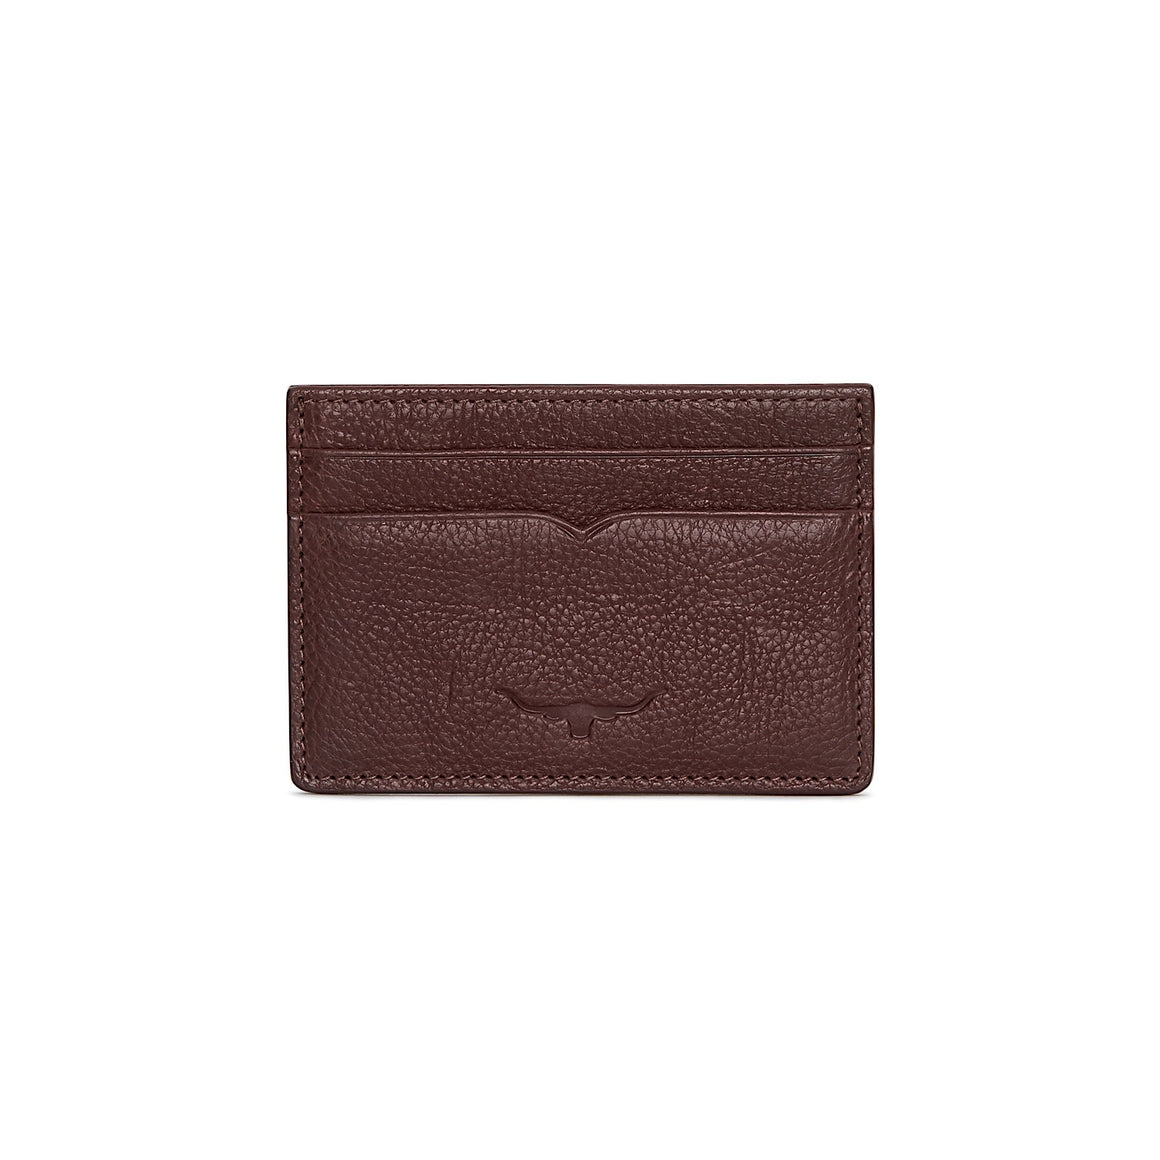 R.M.Williams City Chestnut Credit Card Holder